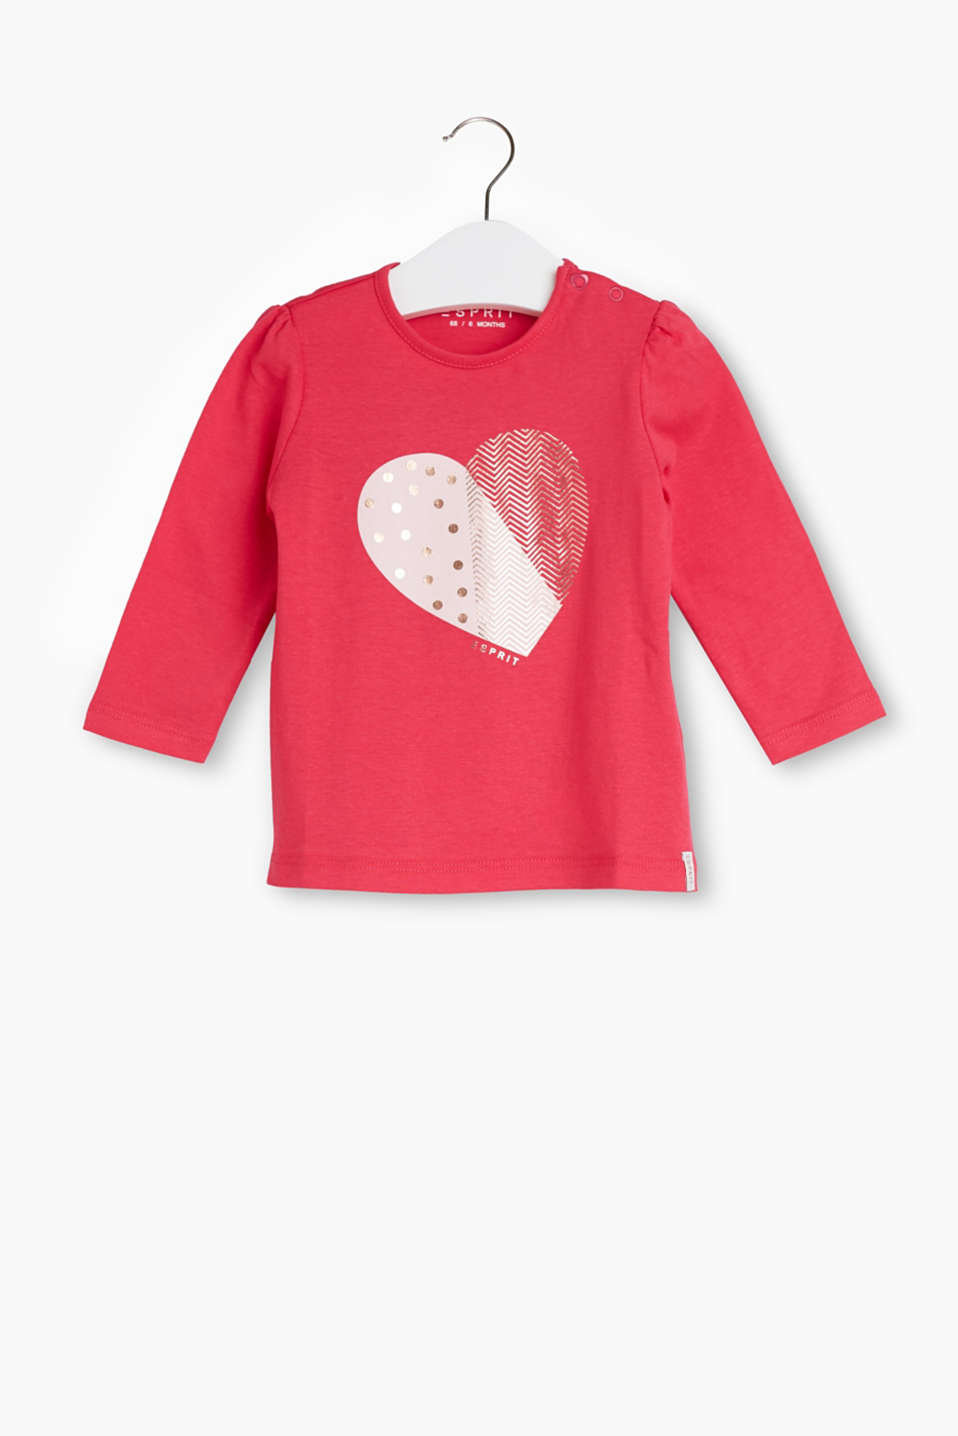 With a shiny heart print: long sleeve top in soft cotton jersey